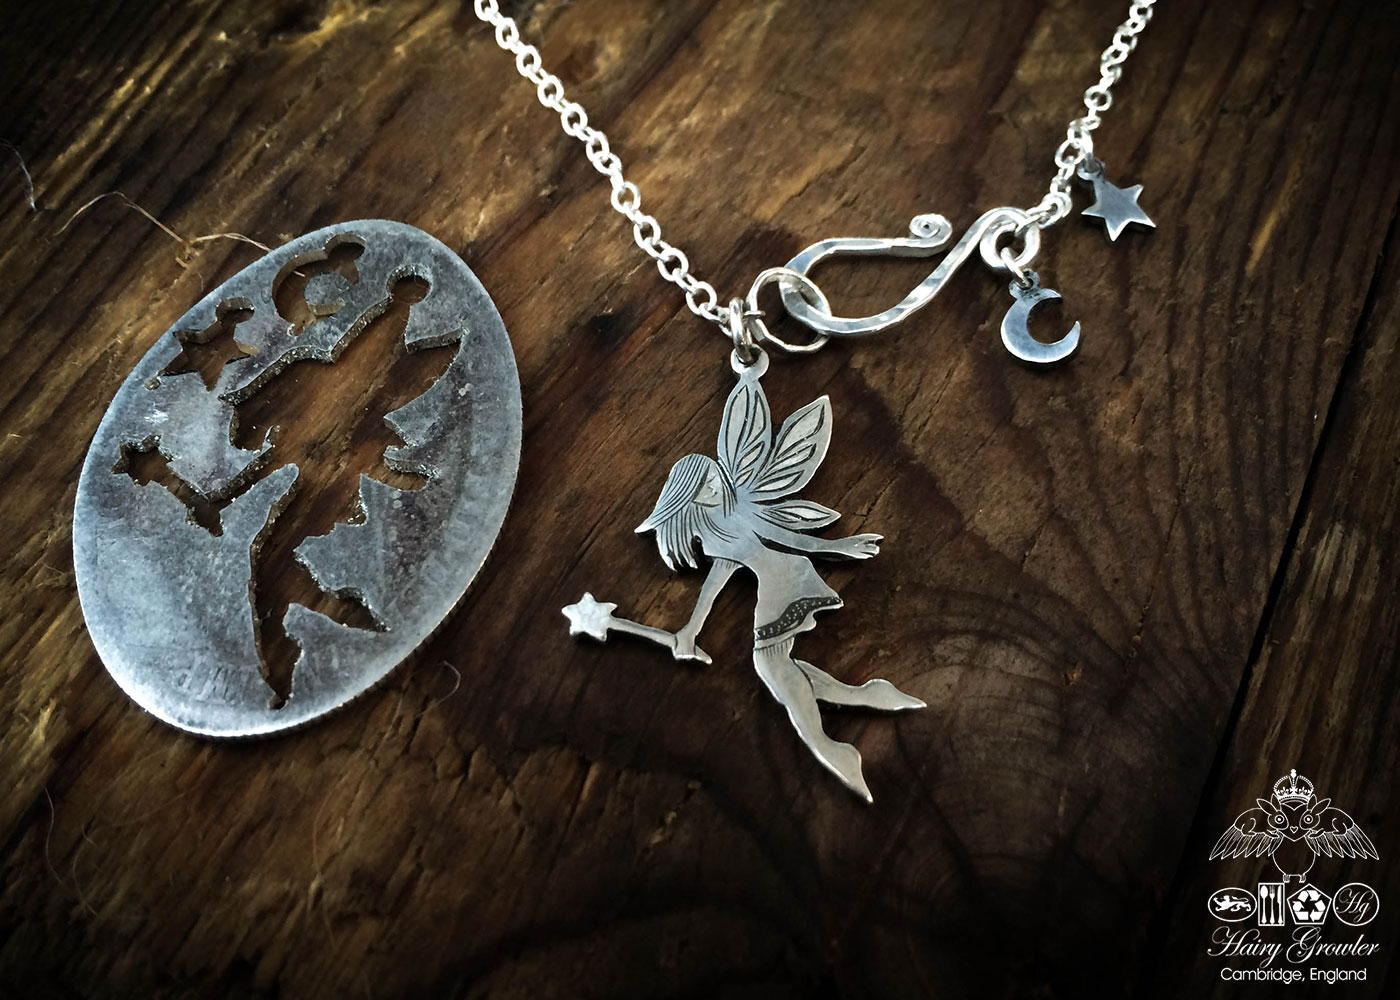 Cute little faerie pendant - handcrafted and recycled using silver shillings